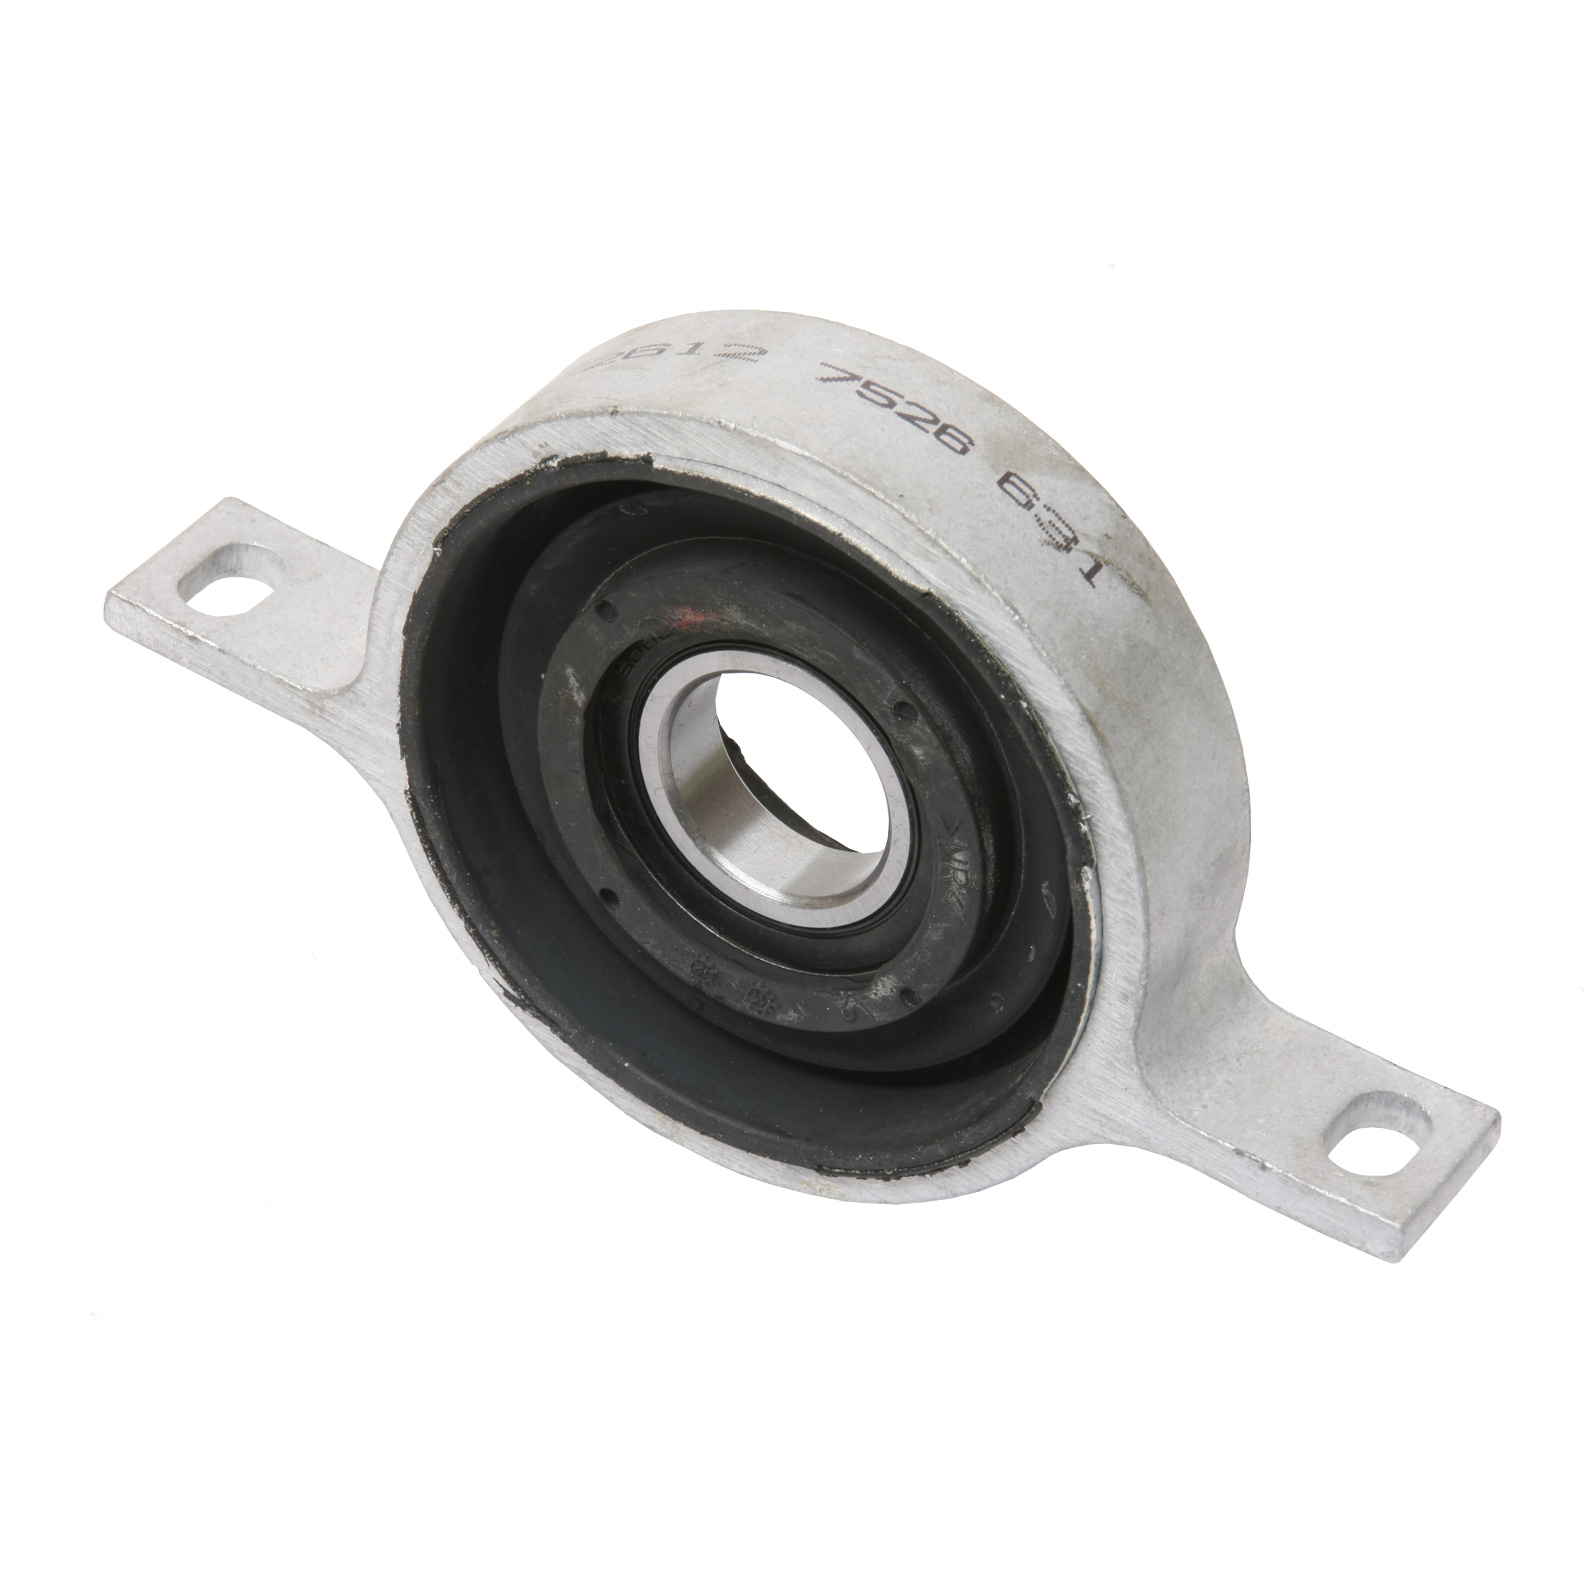 Center Driveshaft Support Bearing, OEM-Quality - E82, E9X, F3X